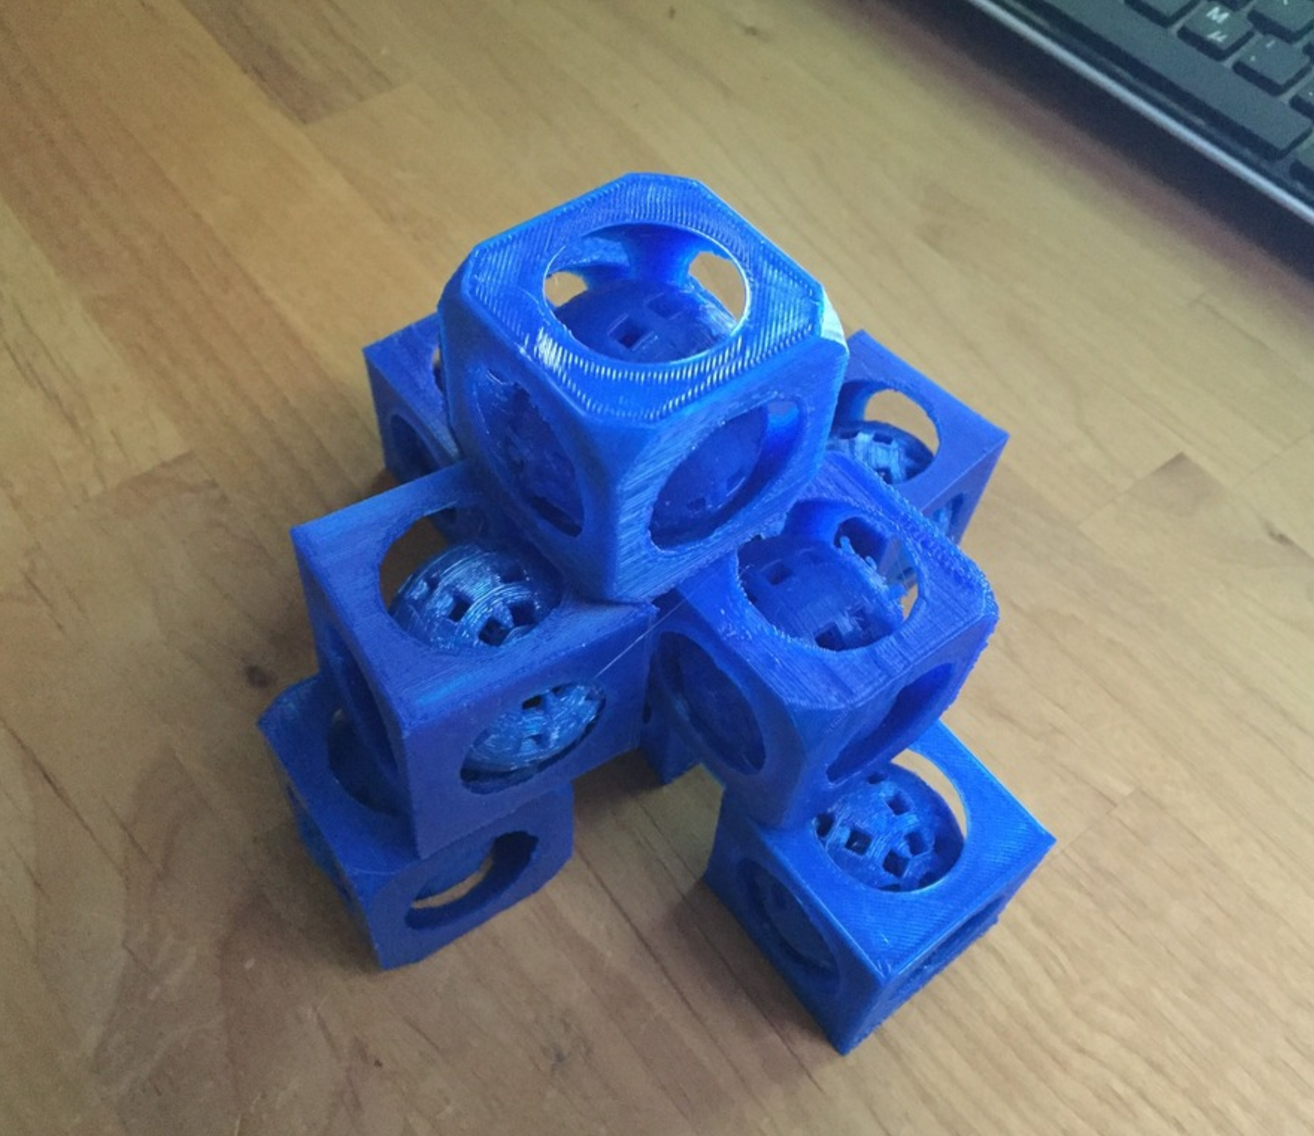 Capture d'écran 2017-05-09 à 17.42.59.png Download free STL file Present: movable ball in a cube made with tinkercad with tutorial • 3D printable model, squiqui